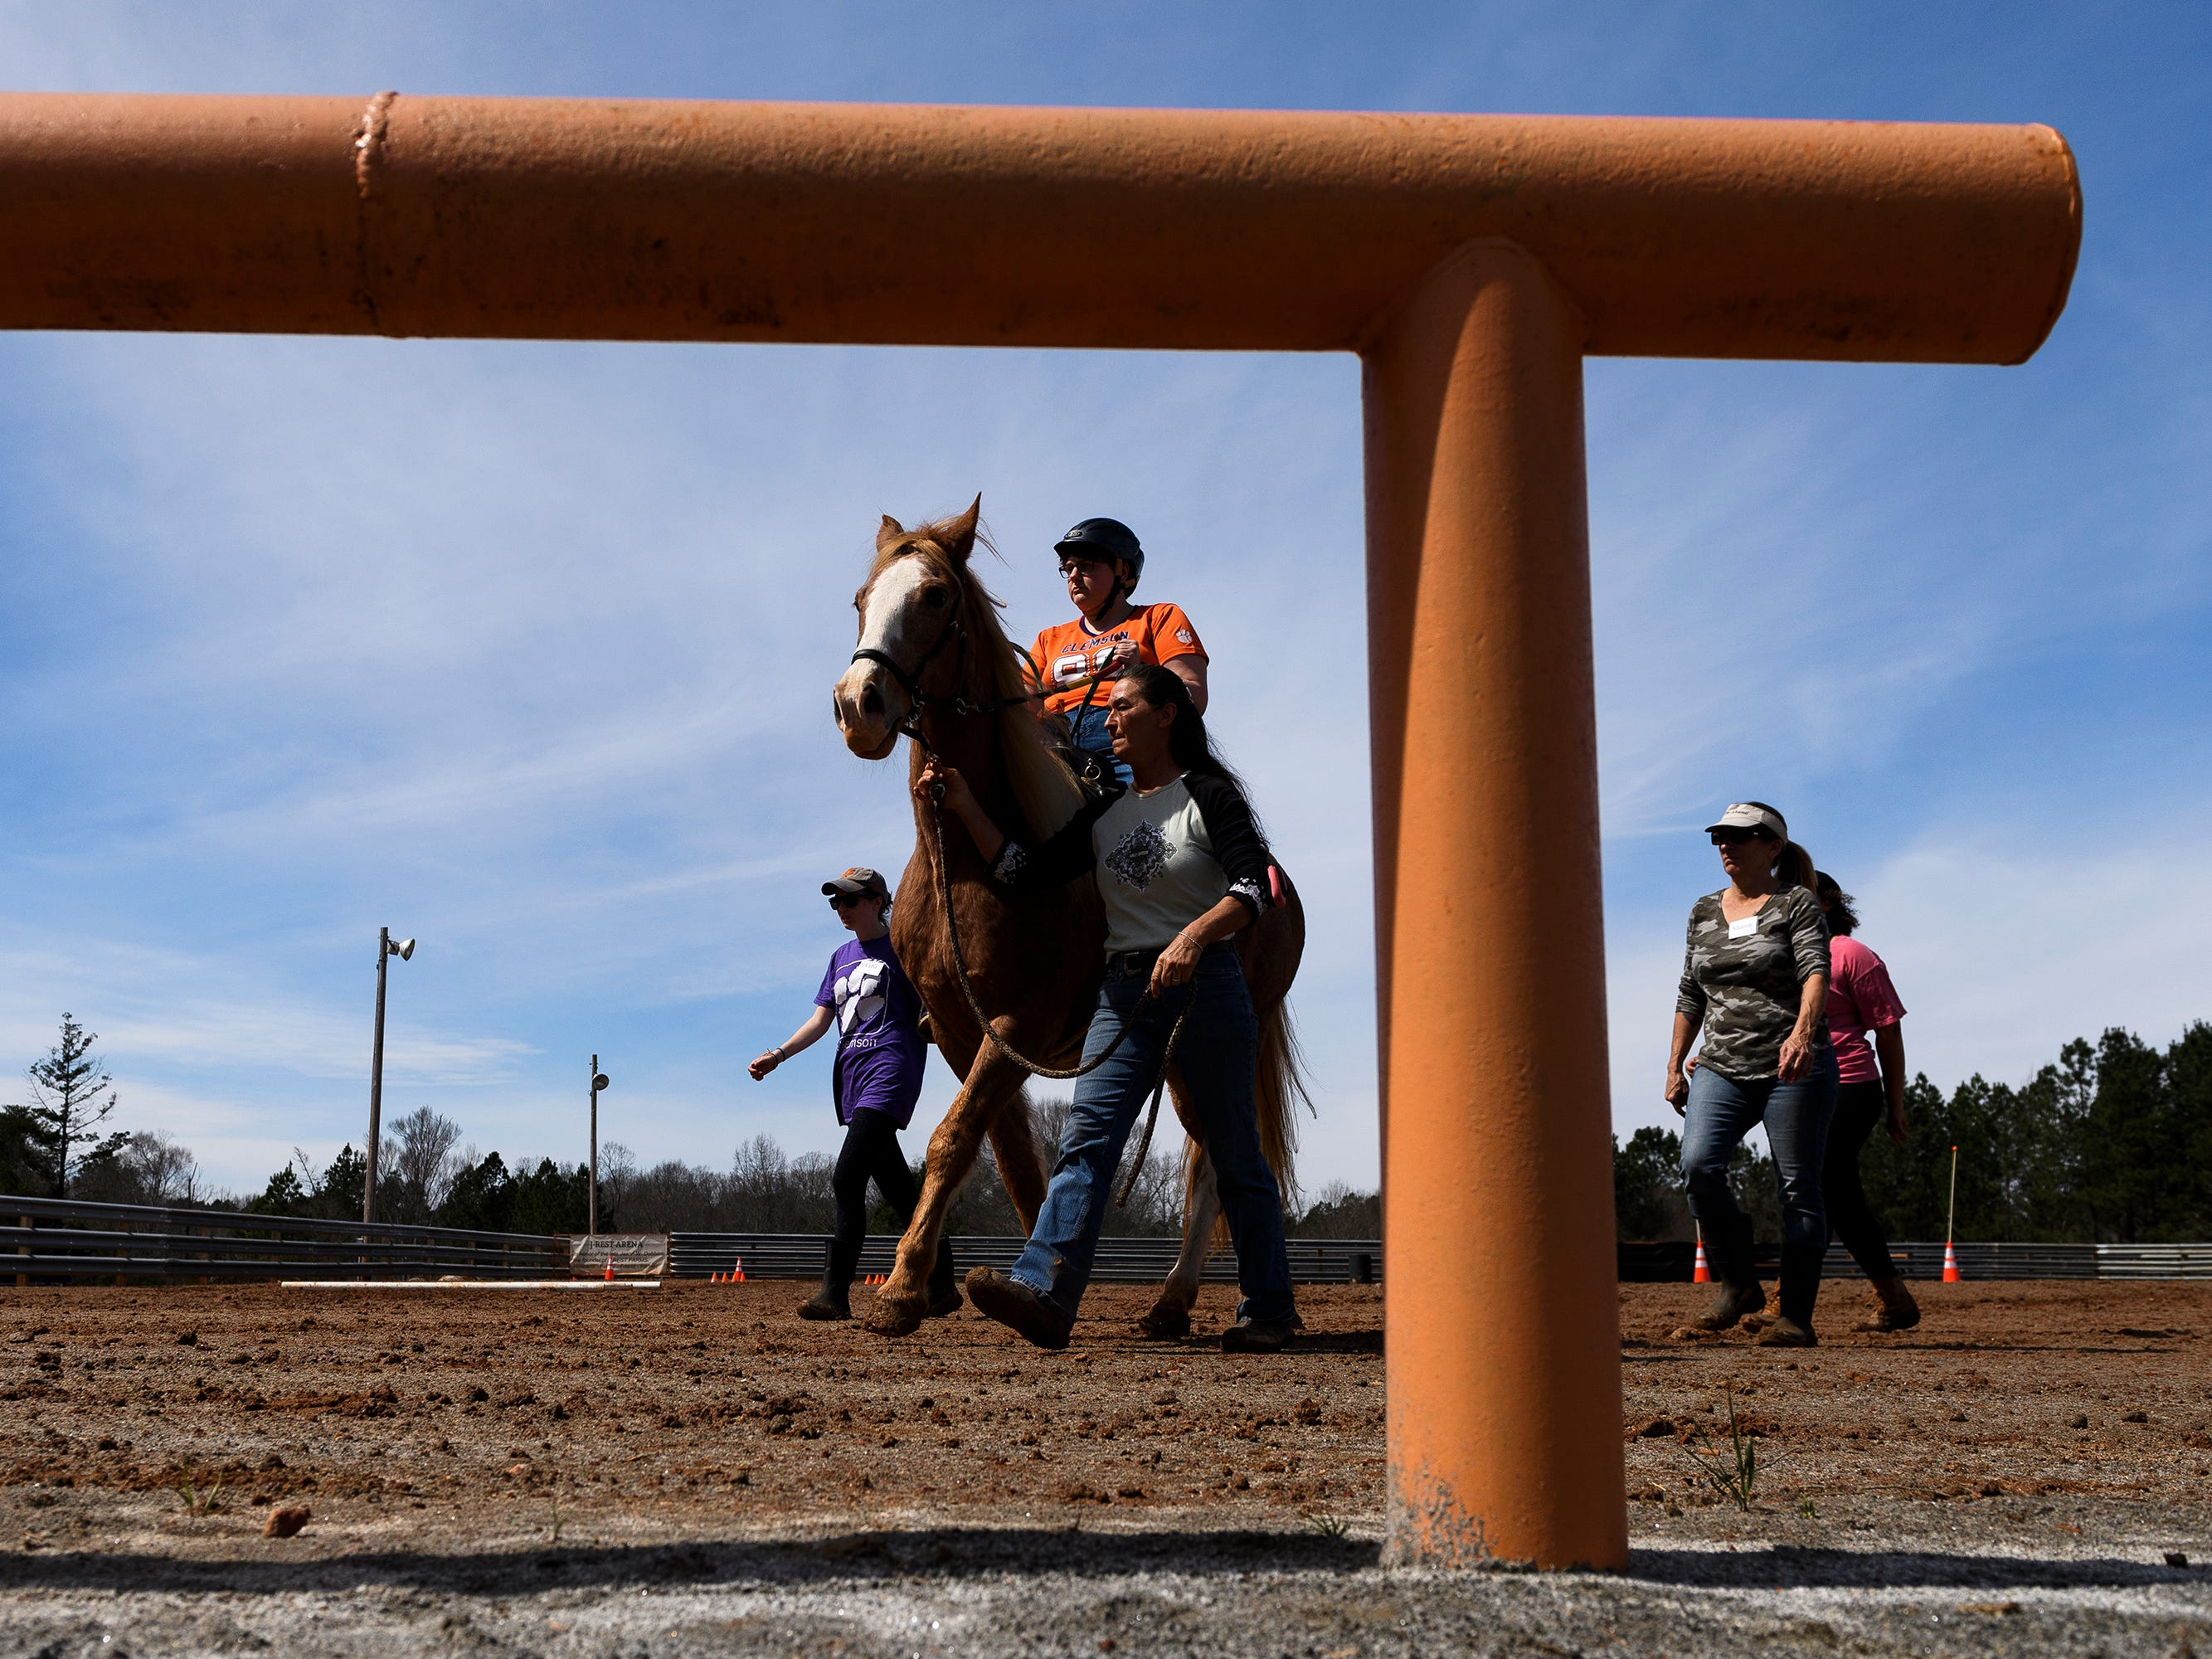 Lisa Hartman and other volunteers walk with Sarah Wright as she rides around the obstacle course at J Rest Farm Tuesday, March 12, 2019.